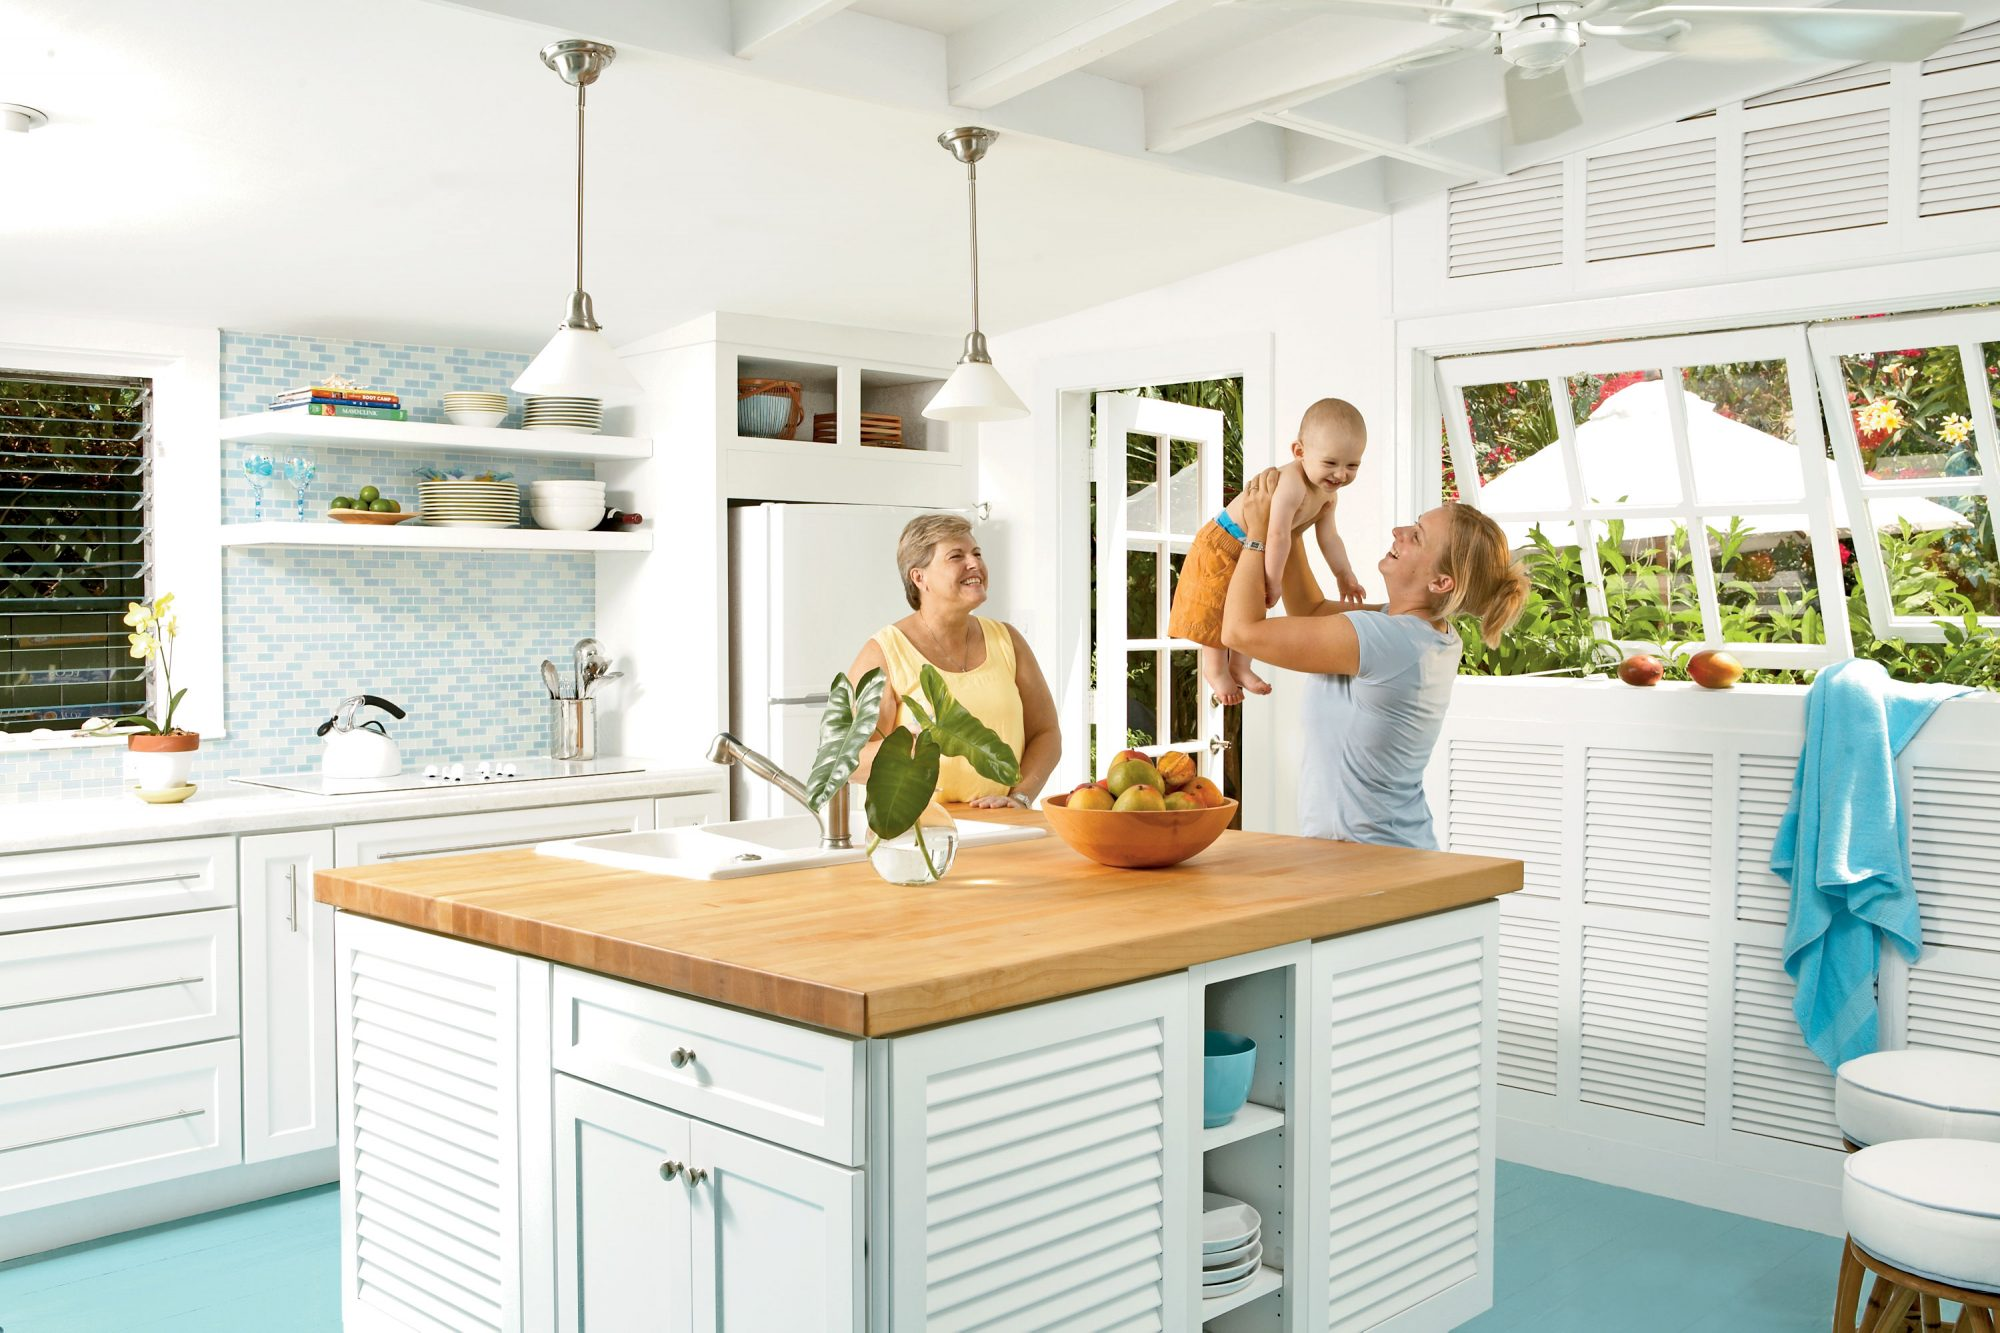 large butcher block island in this kitchen doubles as a multifunctional work space as storage is built beneath it